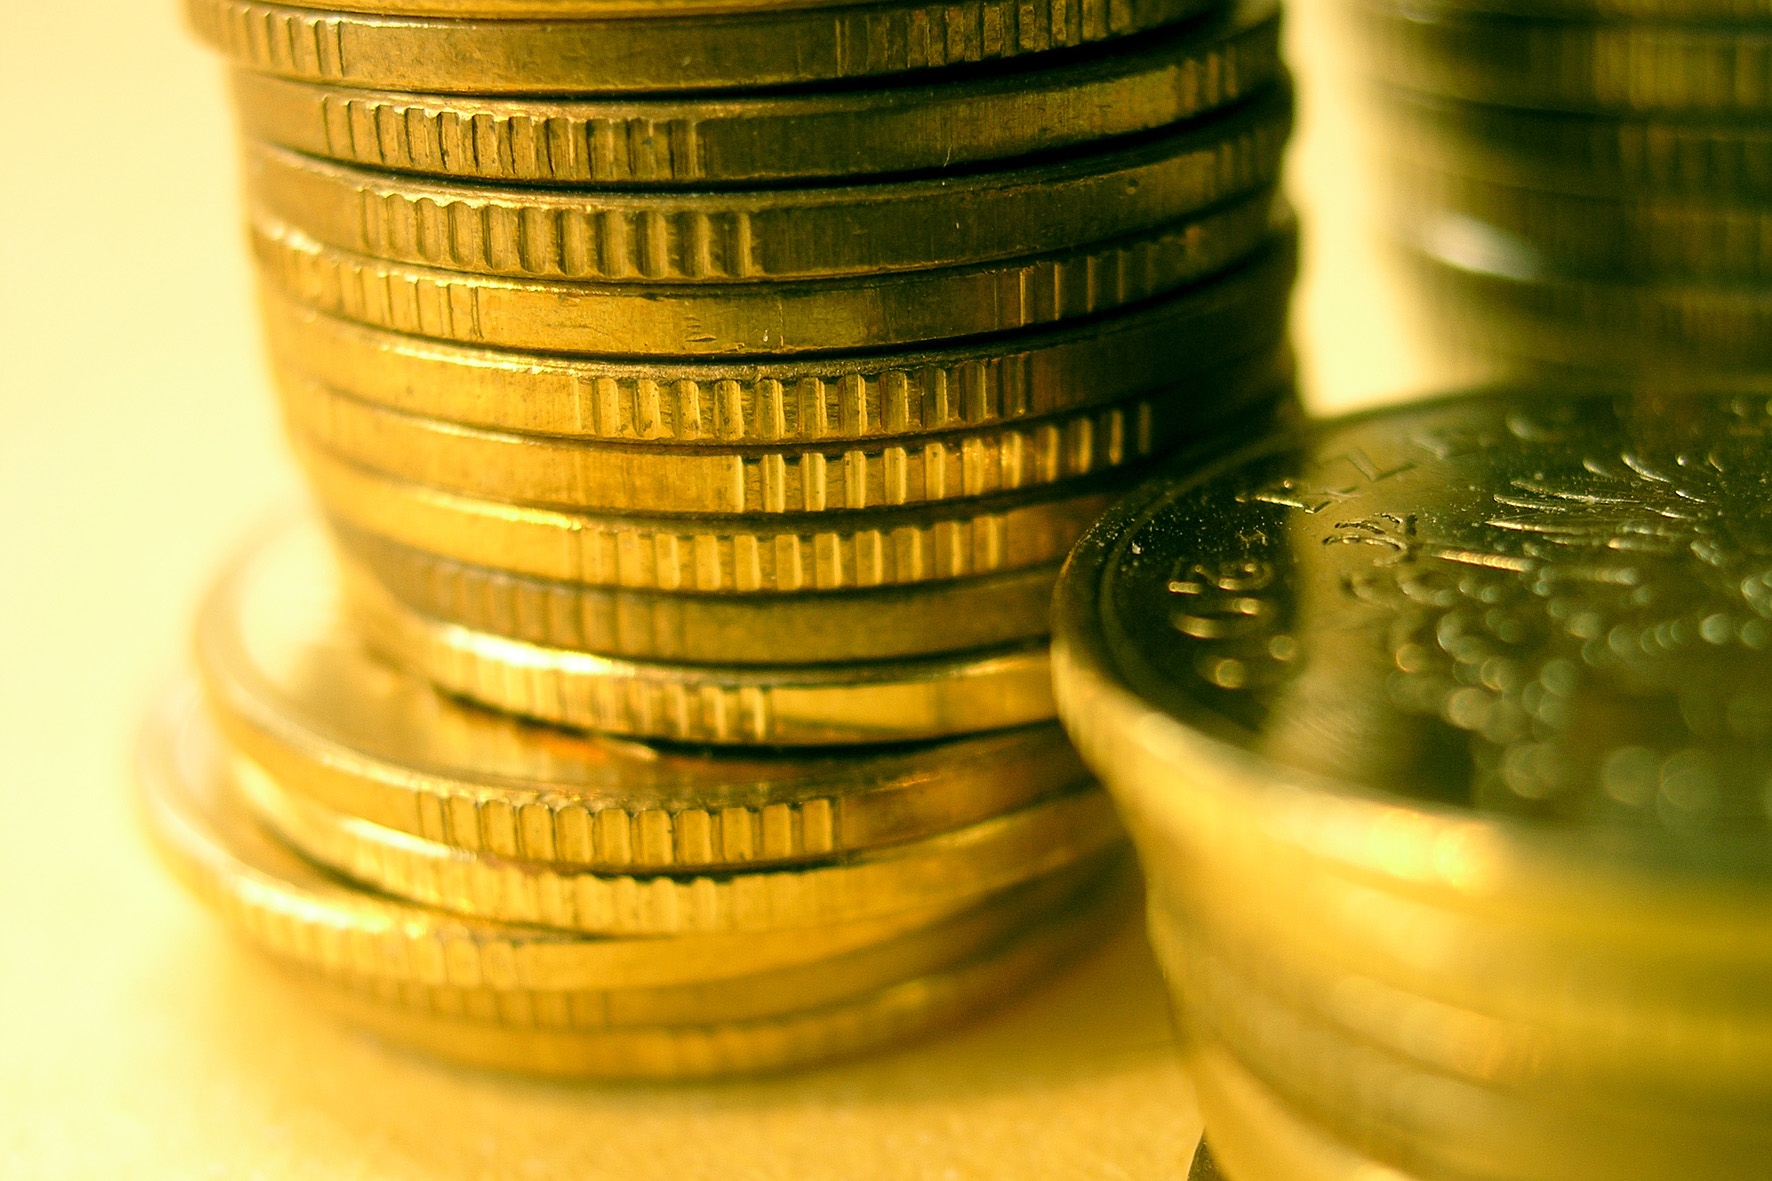 The Man Defined - Money : Coins